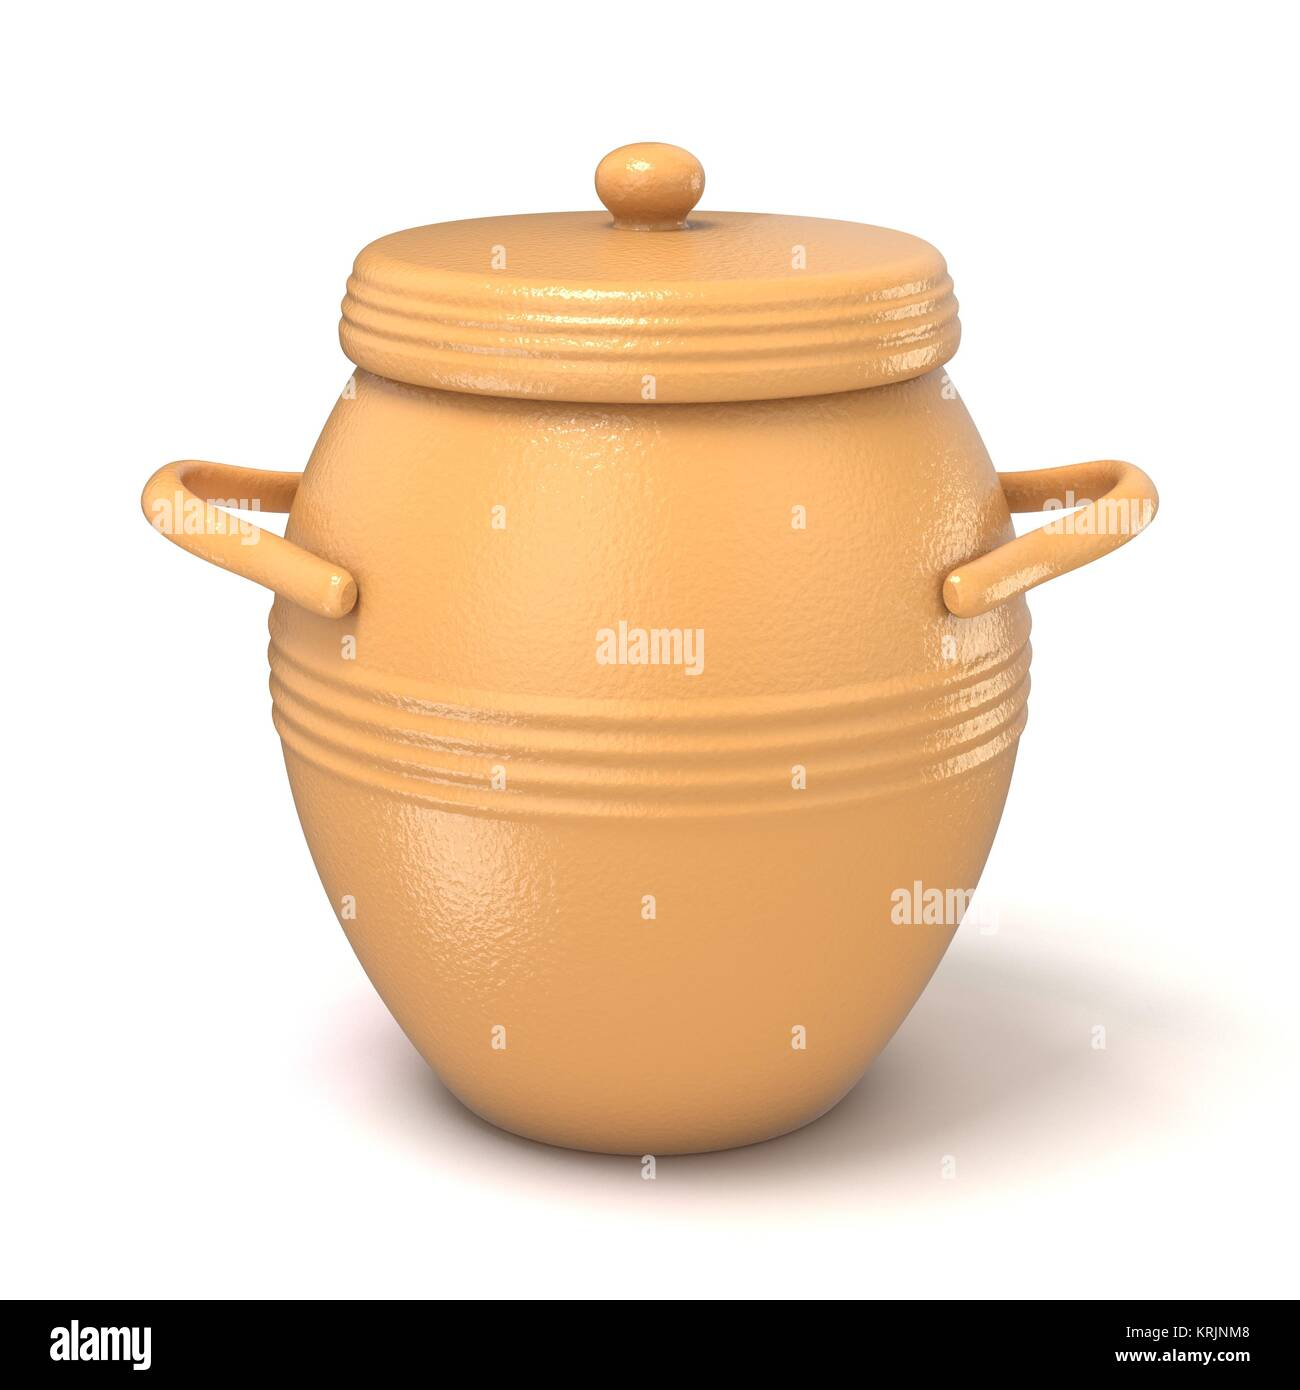 Cooking pot with handle